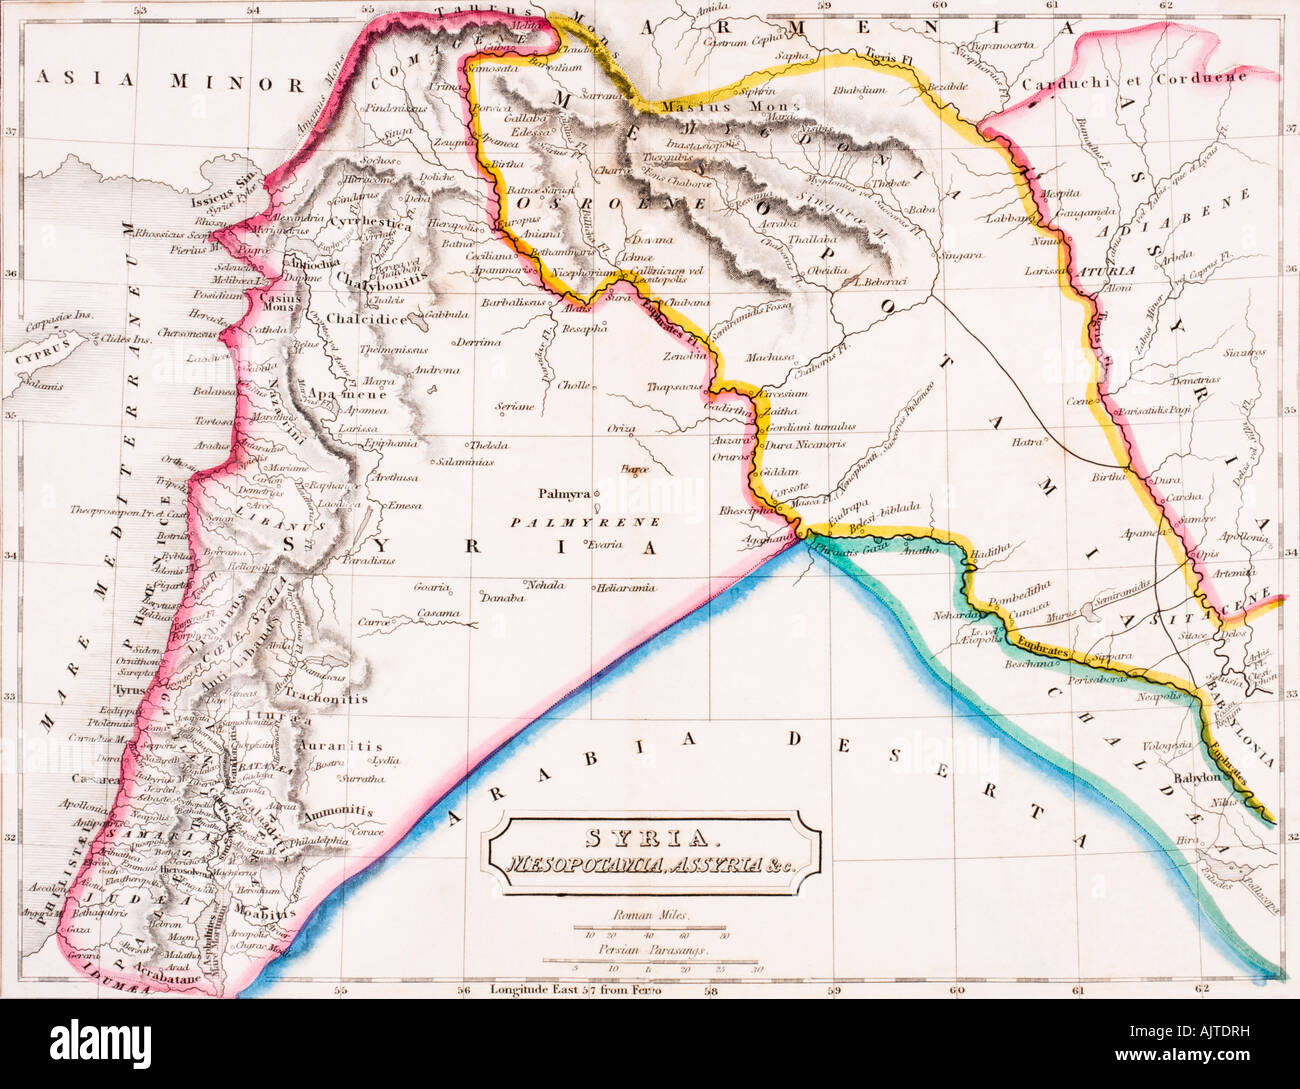 Map of Syria Mesopotamia Assyria From The Atlas of Ancient Geography by Samuel Butler published circa 1829 - Stock Image